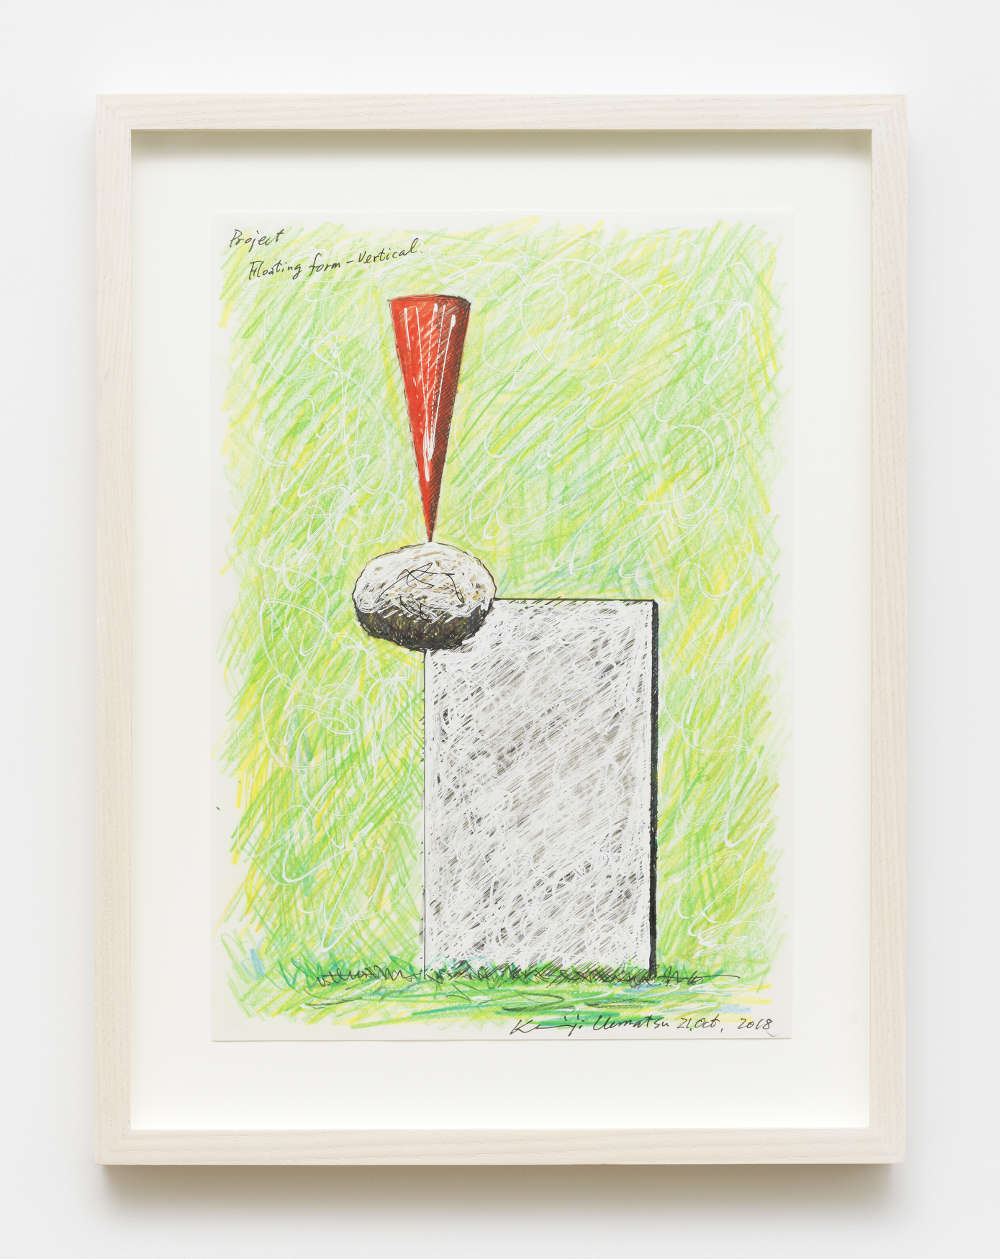 Keiji Uematsu, Floating Form - Red (Project Drawing), 2018. Pencil on paper. Unframed: 29.7 x 21.1 cm (11 3/4 x 8 1/4 in.) Framed: 37.5 x 28.6 x 3.2 cm (14 3/4 x 11 1/4 x 1 1/4 in.) Courtesy the artist and Simon Lee Gallery